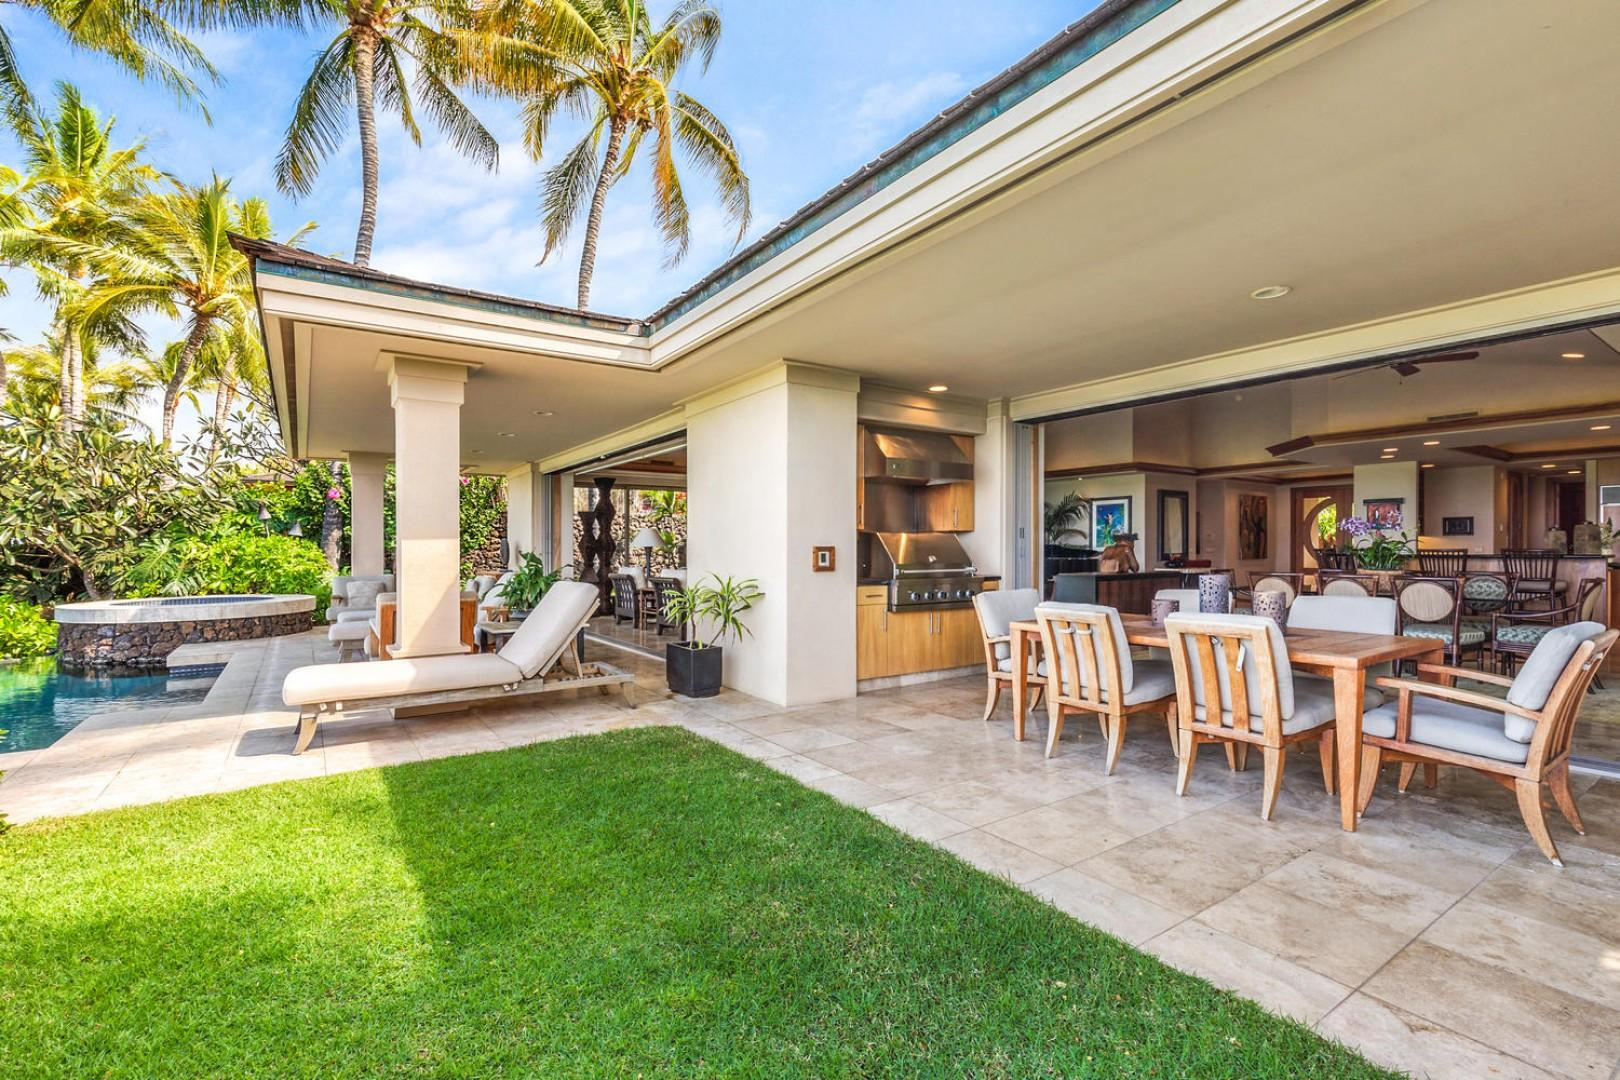 Generous lanai with private grassy yard, outdoor dining area, BBQ grill, and pool deck loungers.